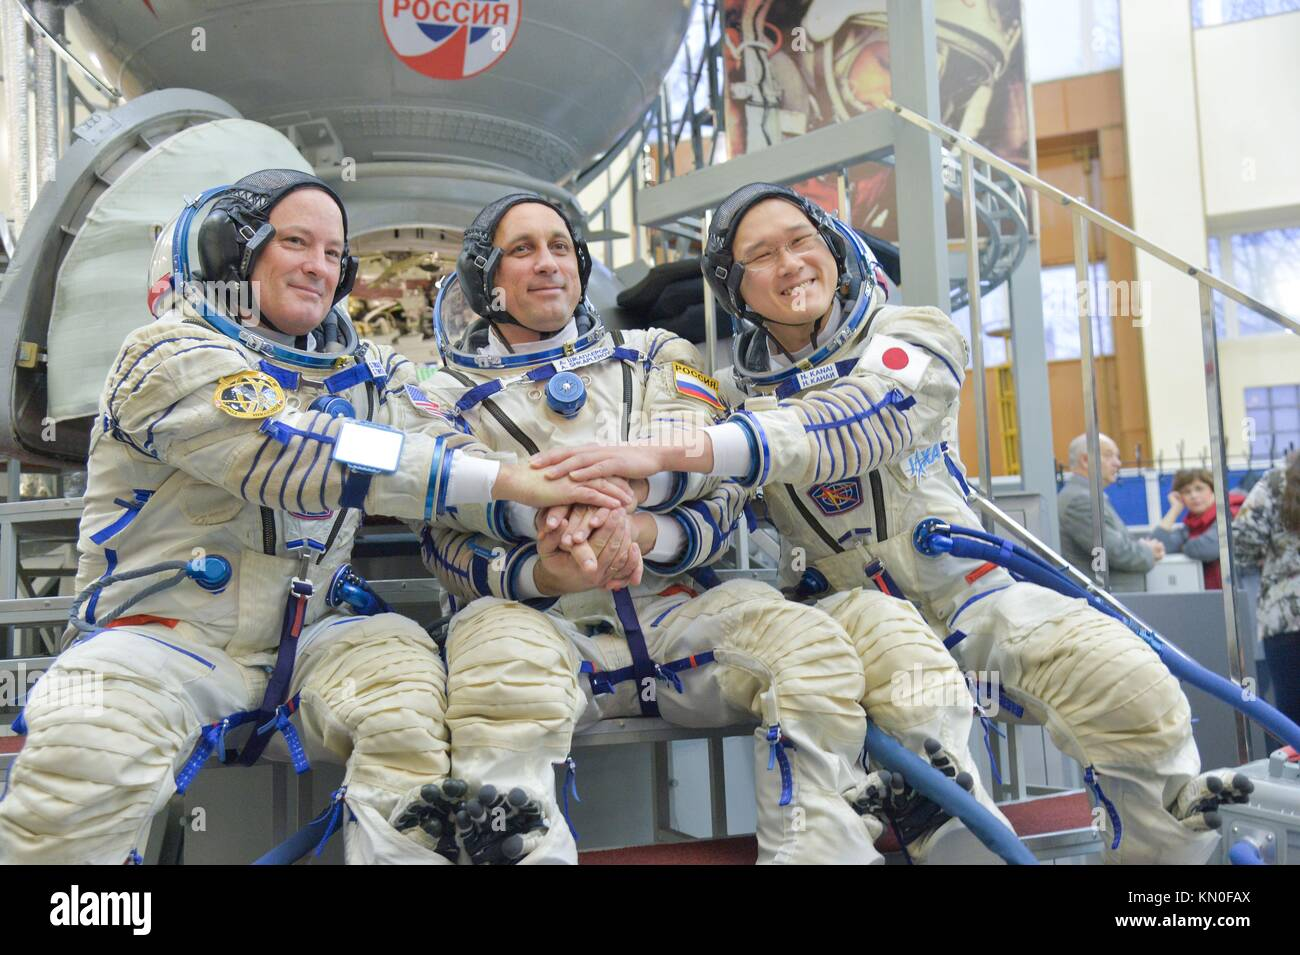 NASA International Space Station Expedition 54-55 prime crew members (L-R) American astronaut Scott Tingle, Russian Stock Photo